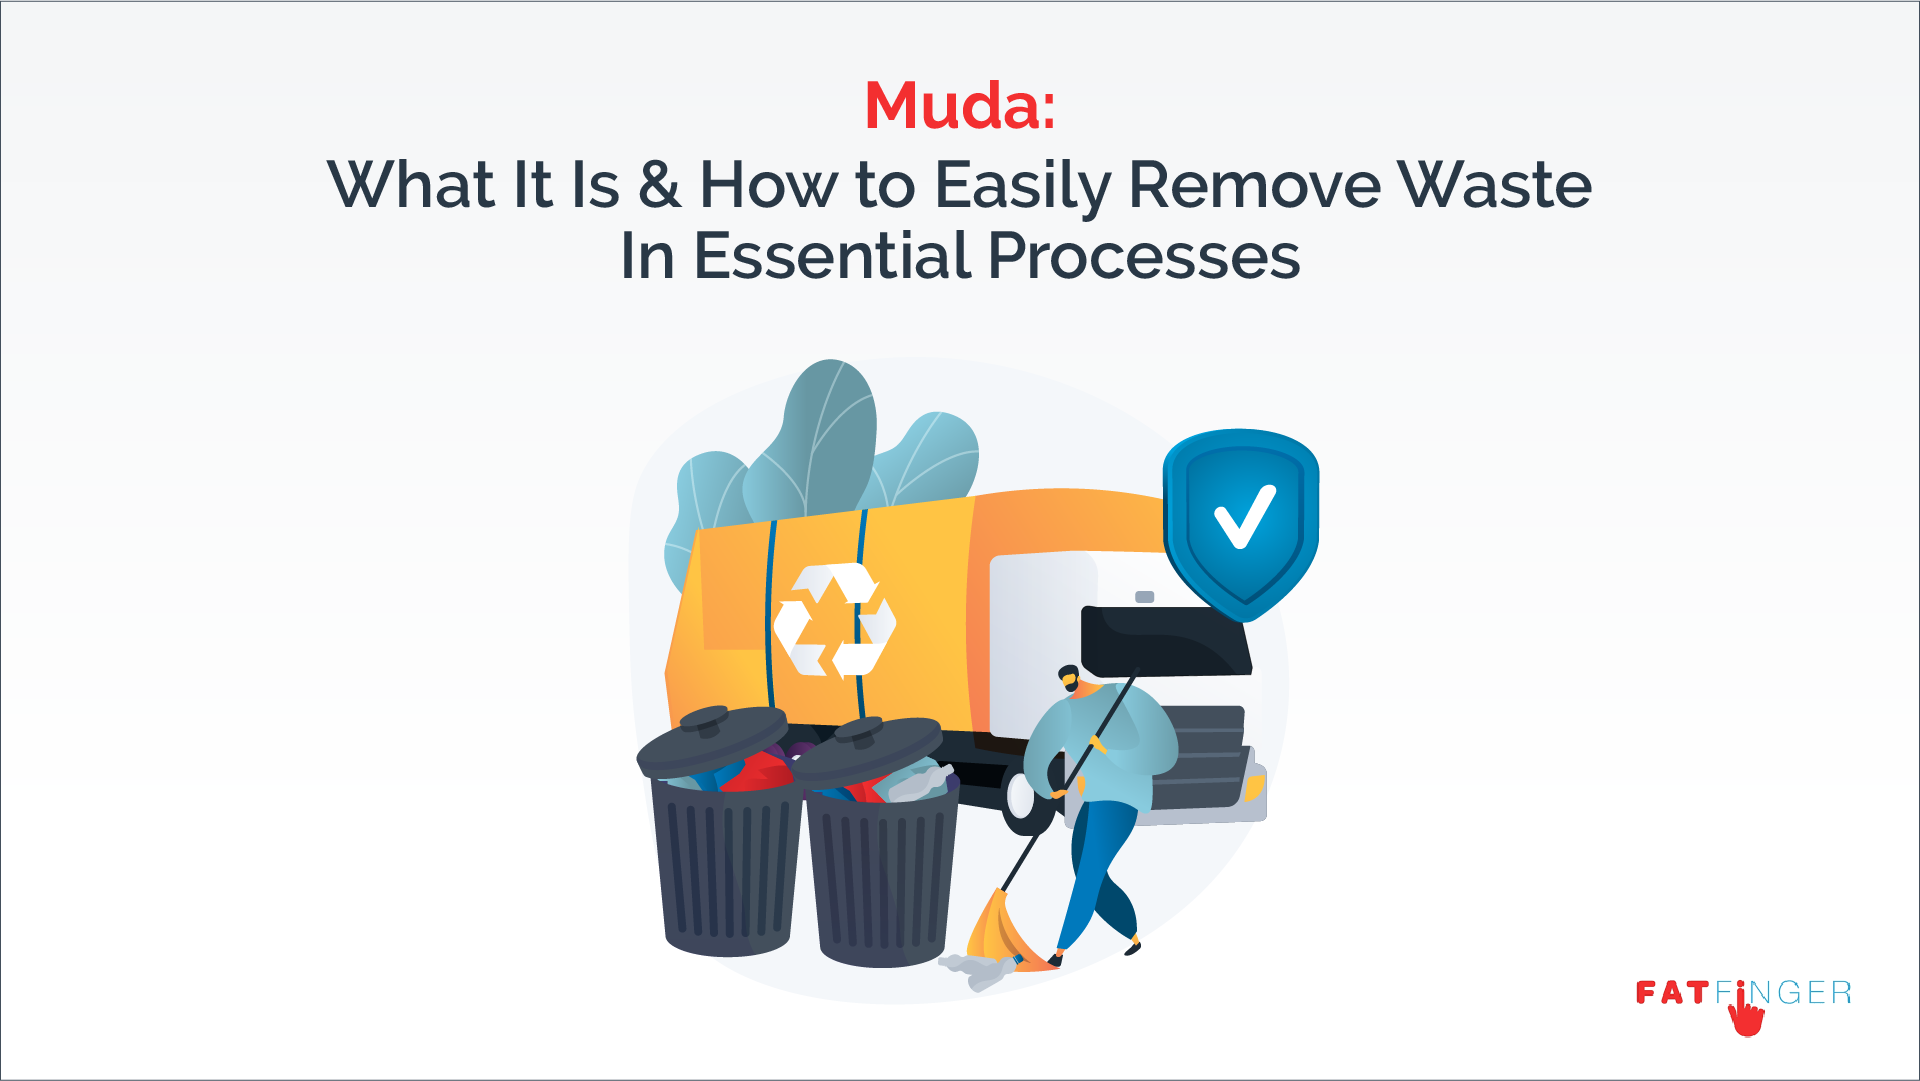 Muda What It Is & How to Easily Remove Waste In Essential Processes